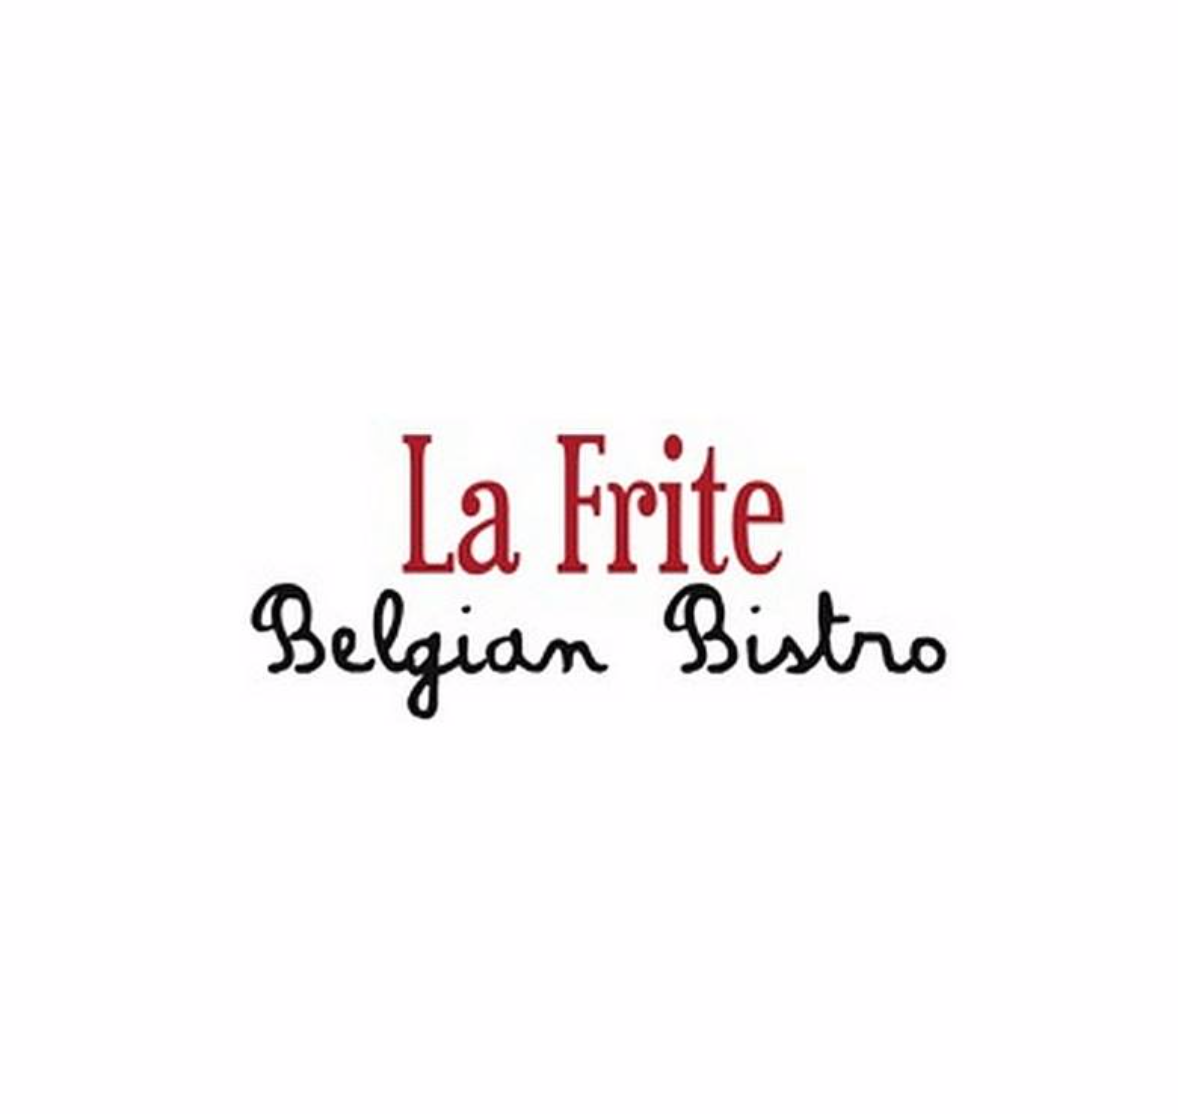 La Frite Belgian Bistro , Lunch & Dinner  728 S Alamo St, San Antonio, 78209  P 210-224-7555    La Frite's Dinner Menu      Make a Reservation on OpenTable